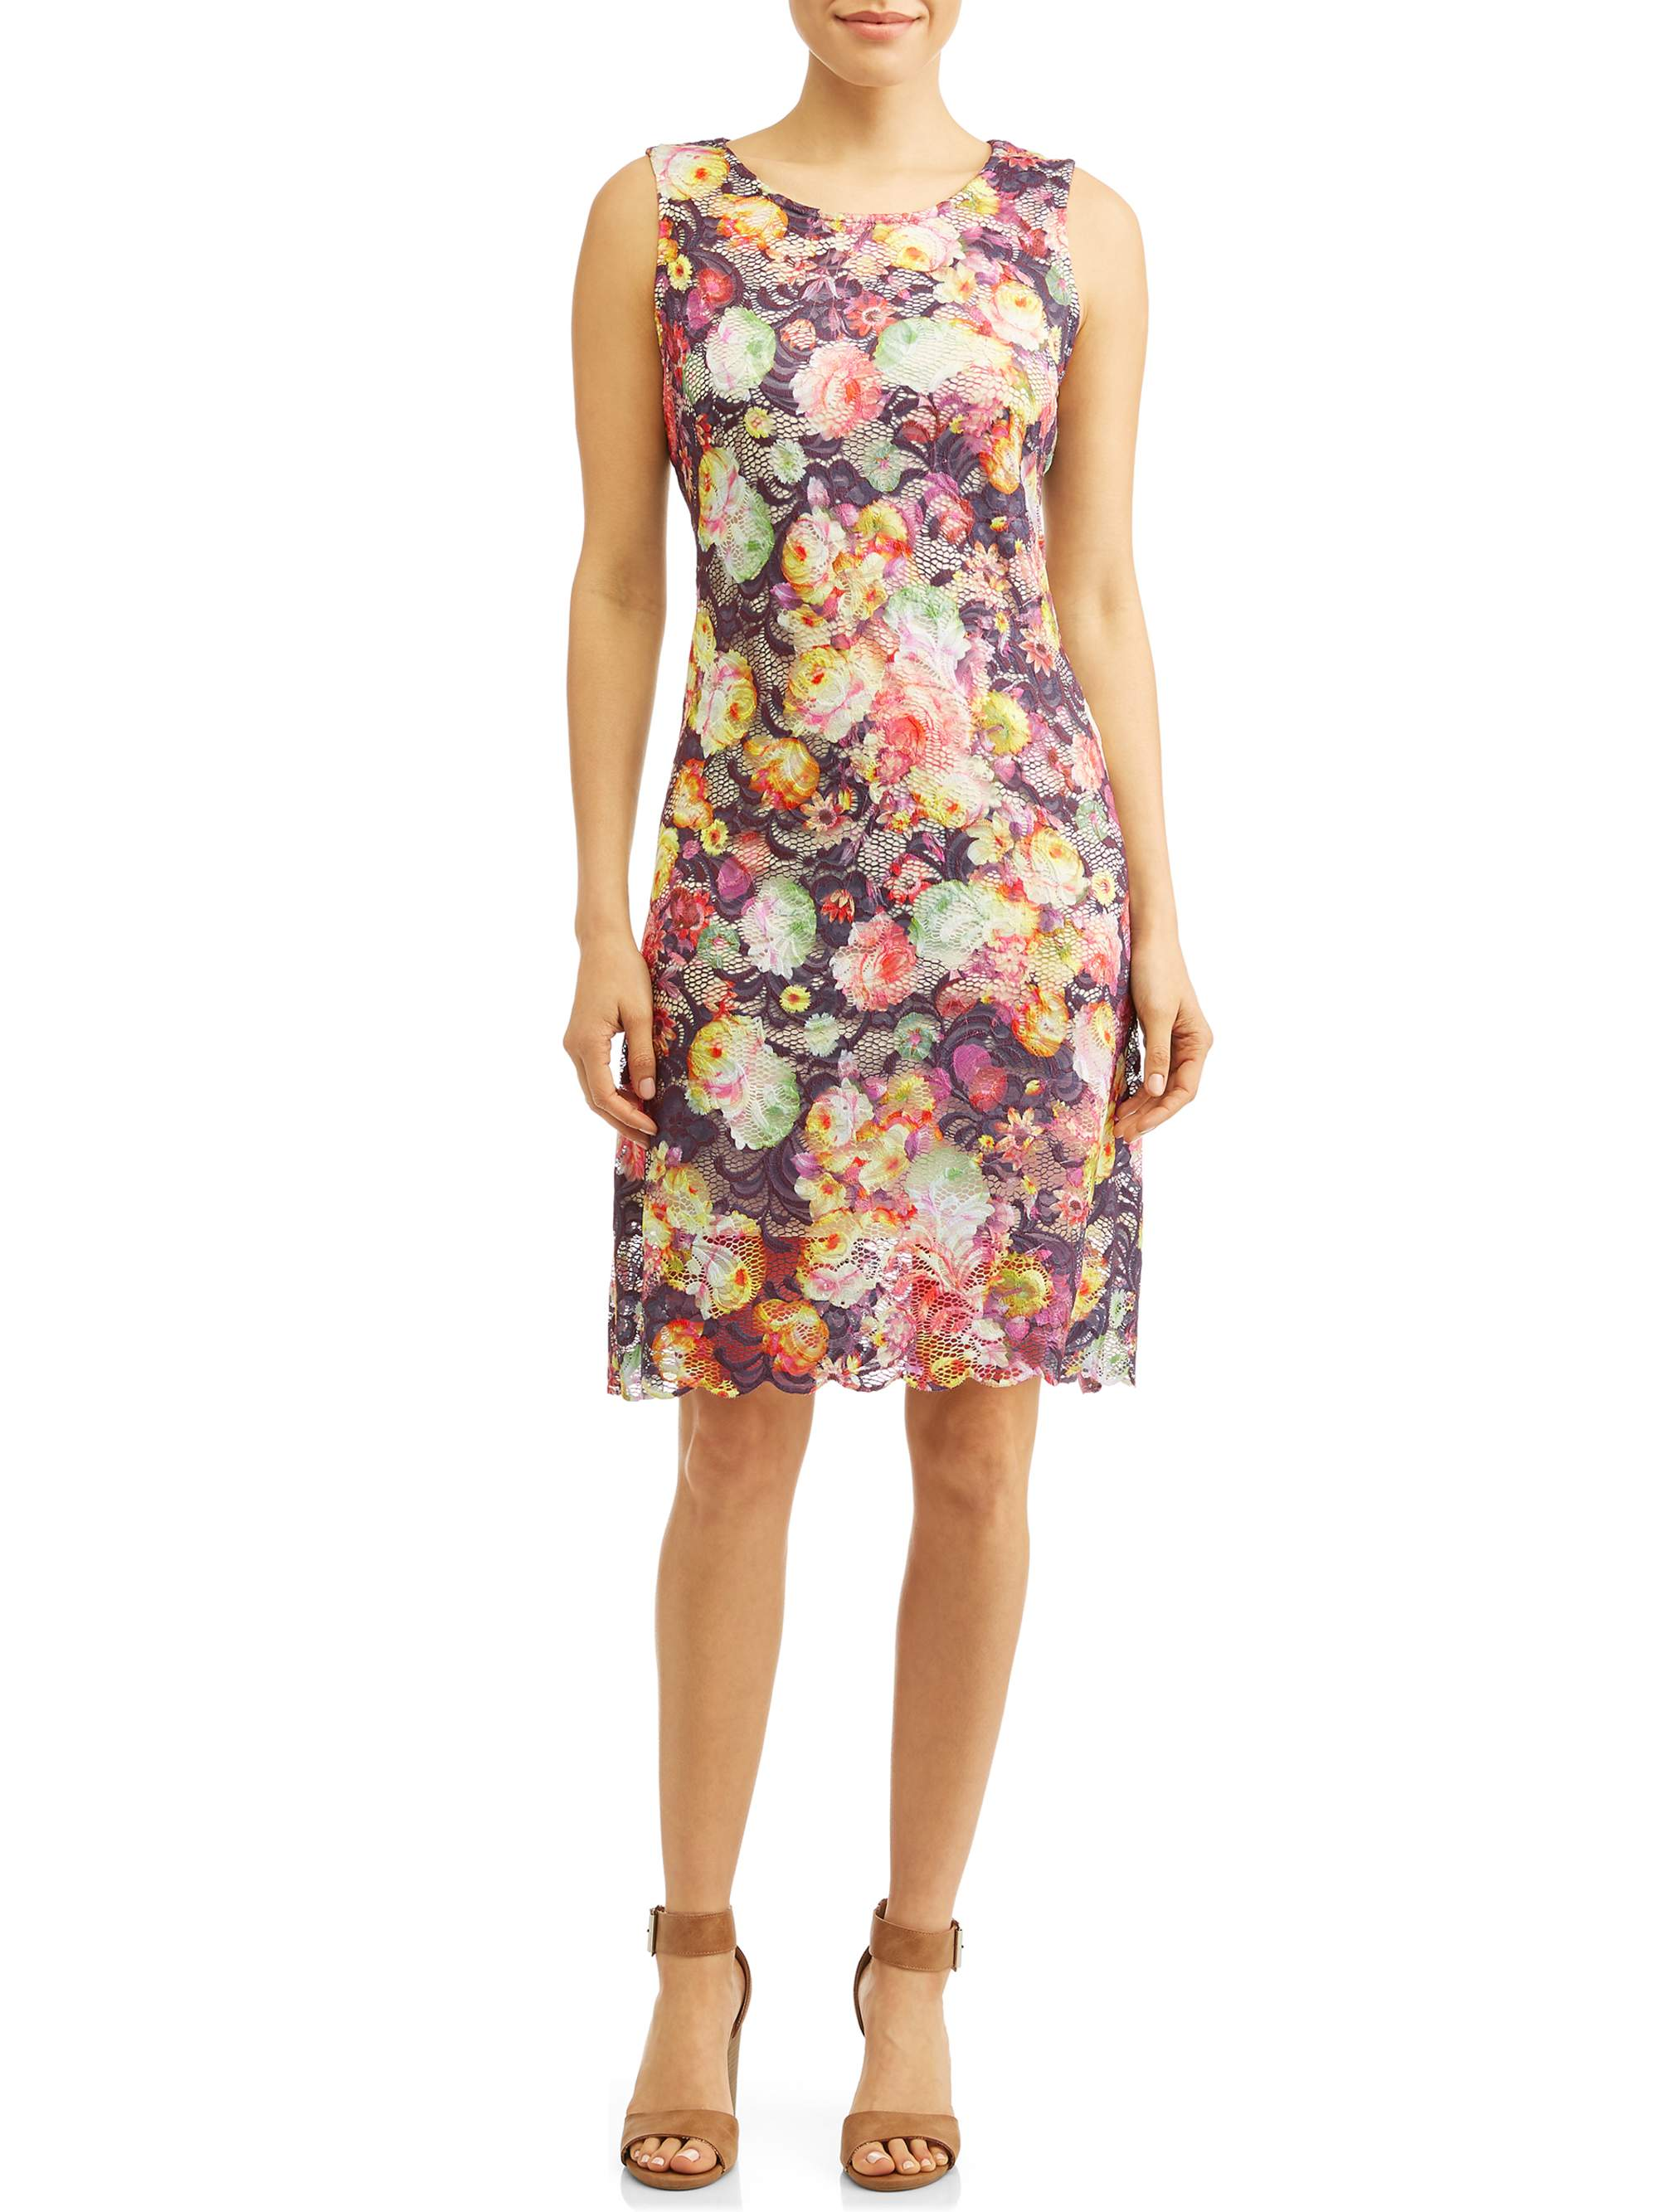 Women's Printed Floral Lace Dress